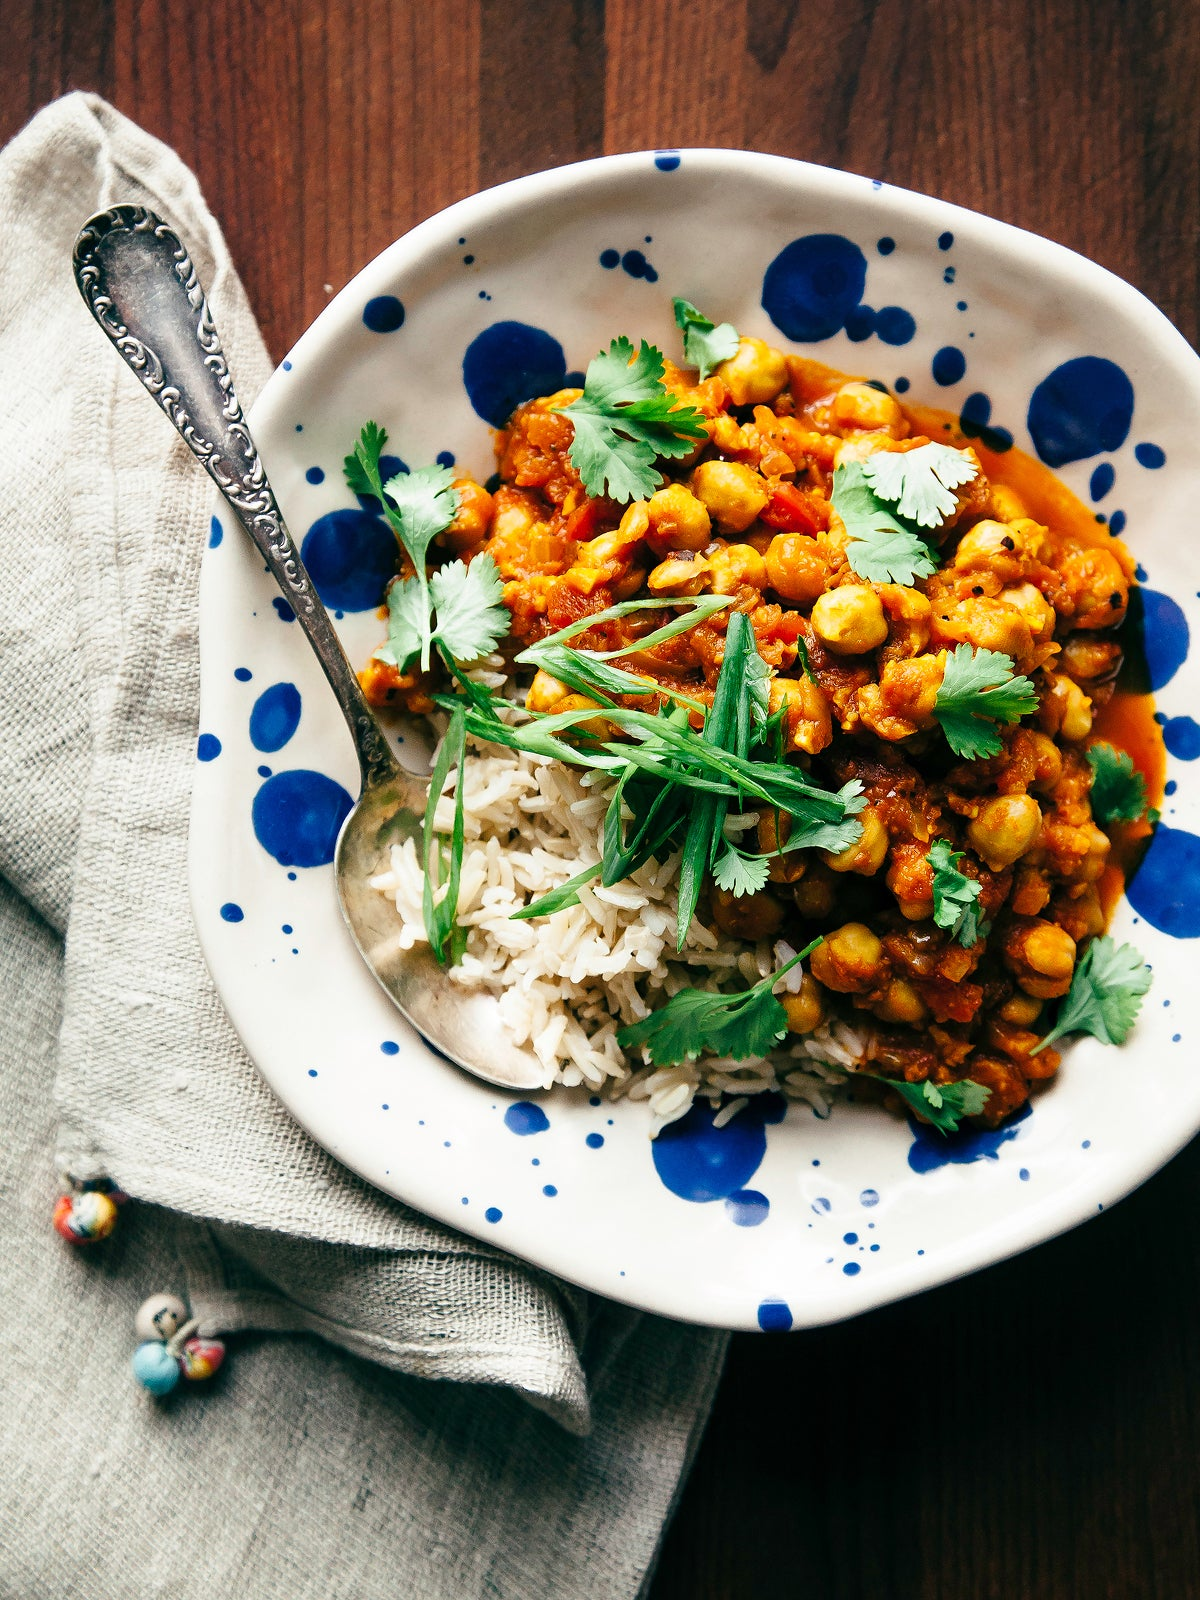 00-FEATURE-cold-weather-comfort-food-domino-instant-pot-chana-masala